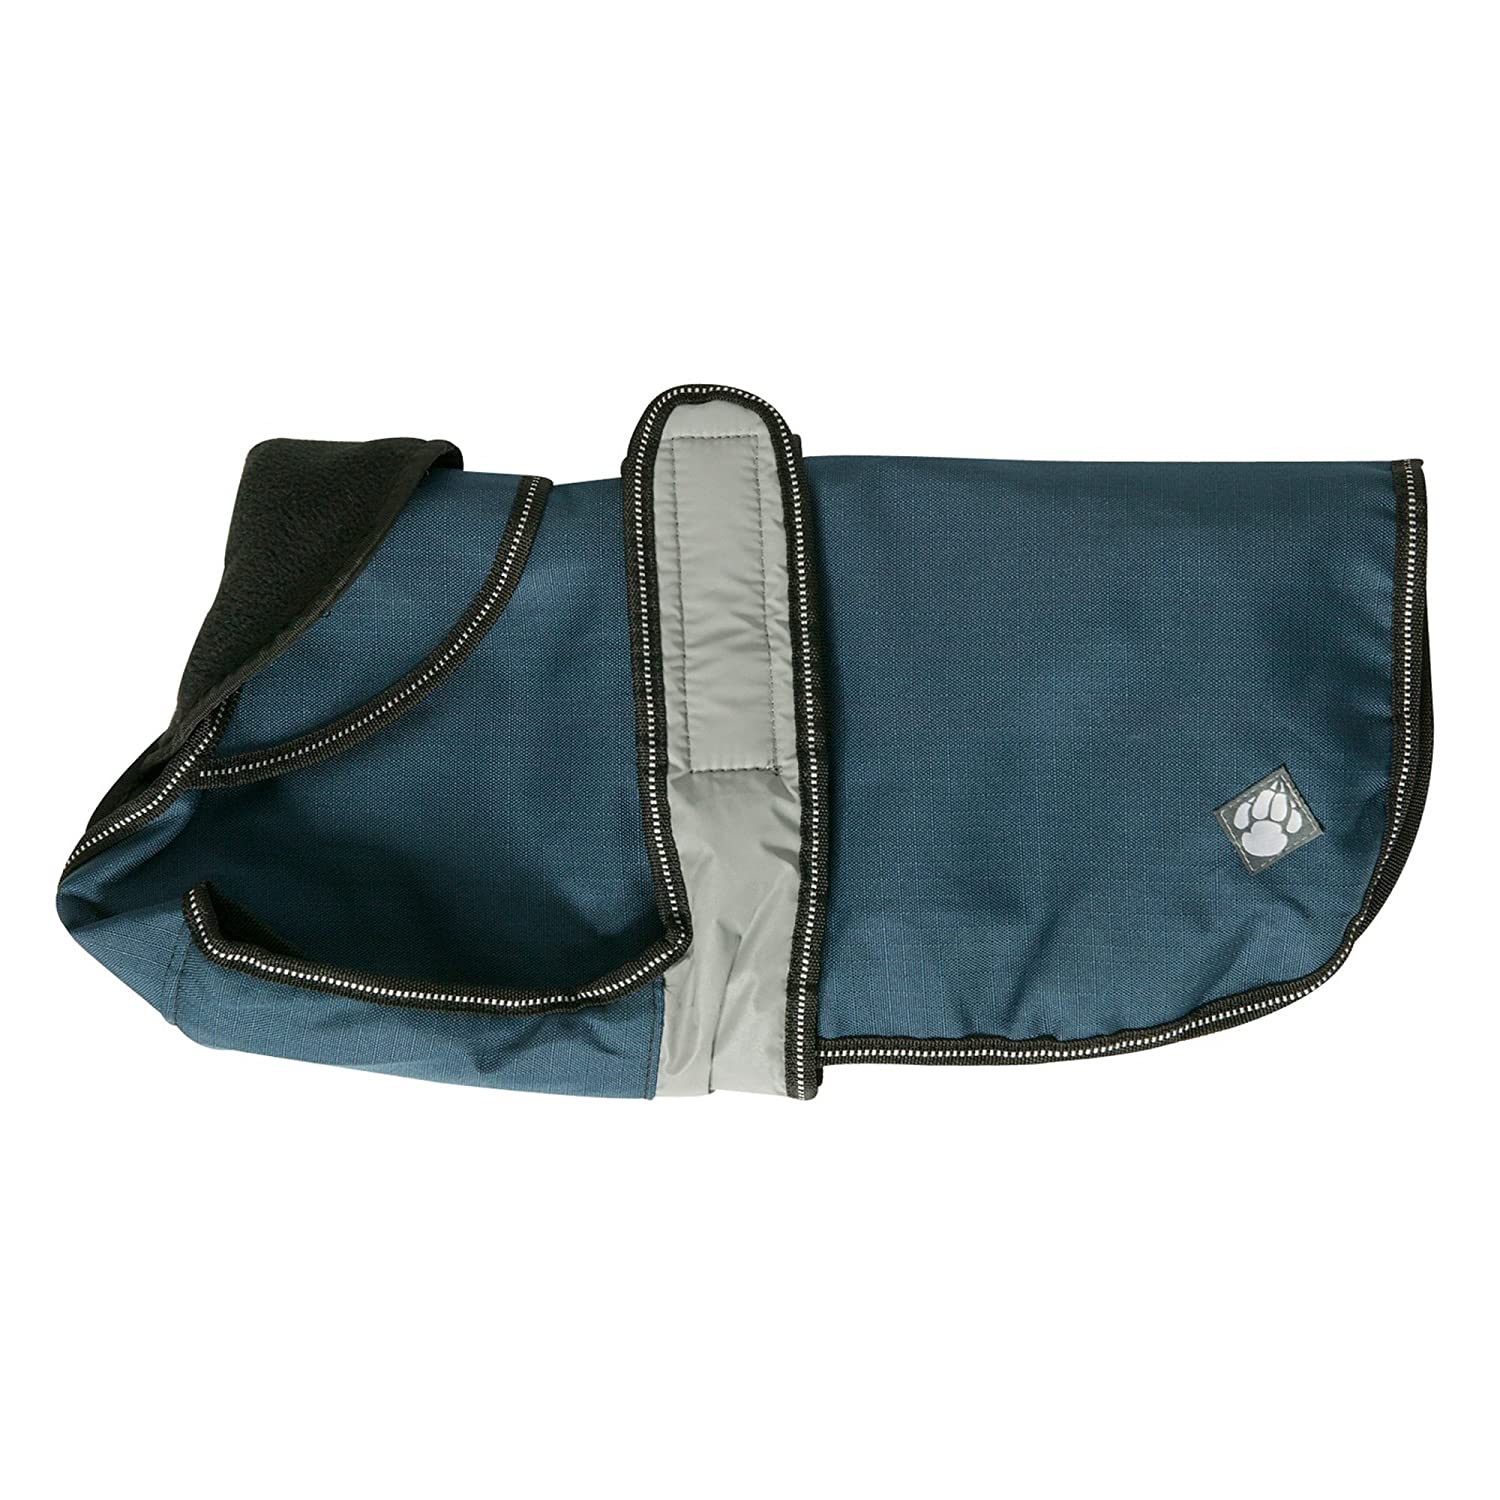 bluee 21.6in bluee 21.6in Danish Design Pet Products 2 In 1 Dog Coat (21.6in) (bluee)